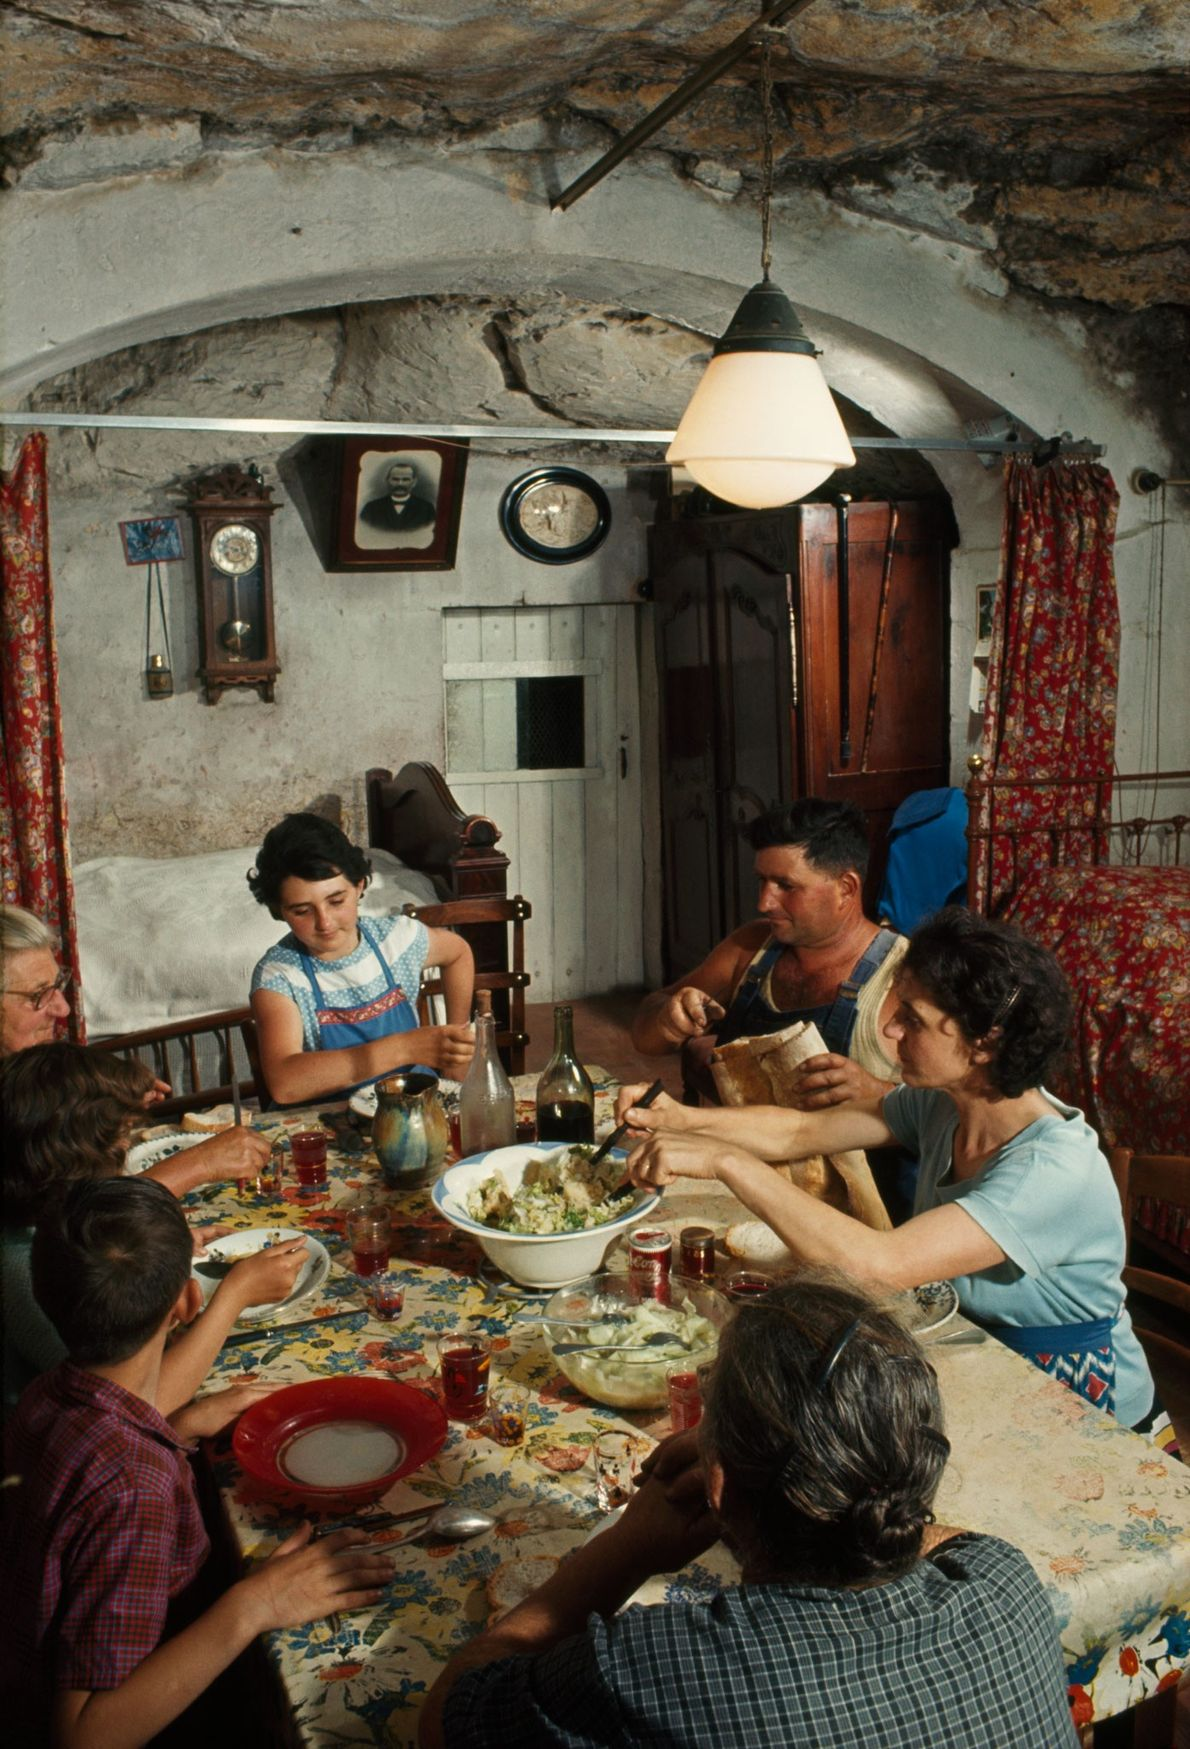 Family members eat lunch in their cavern home in the Loire region of France.